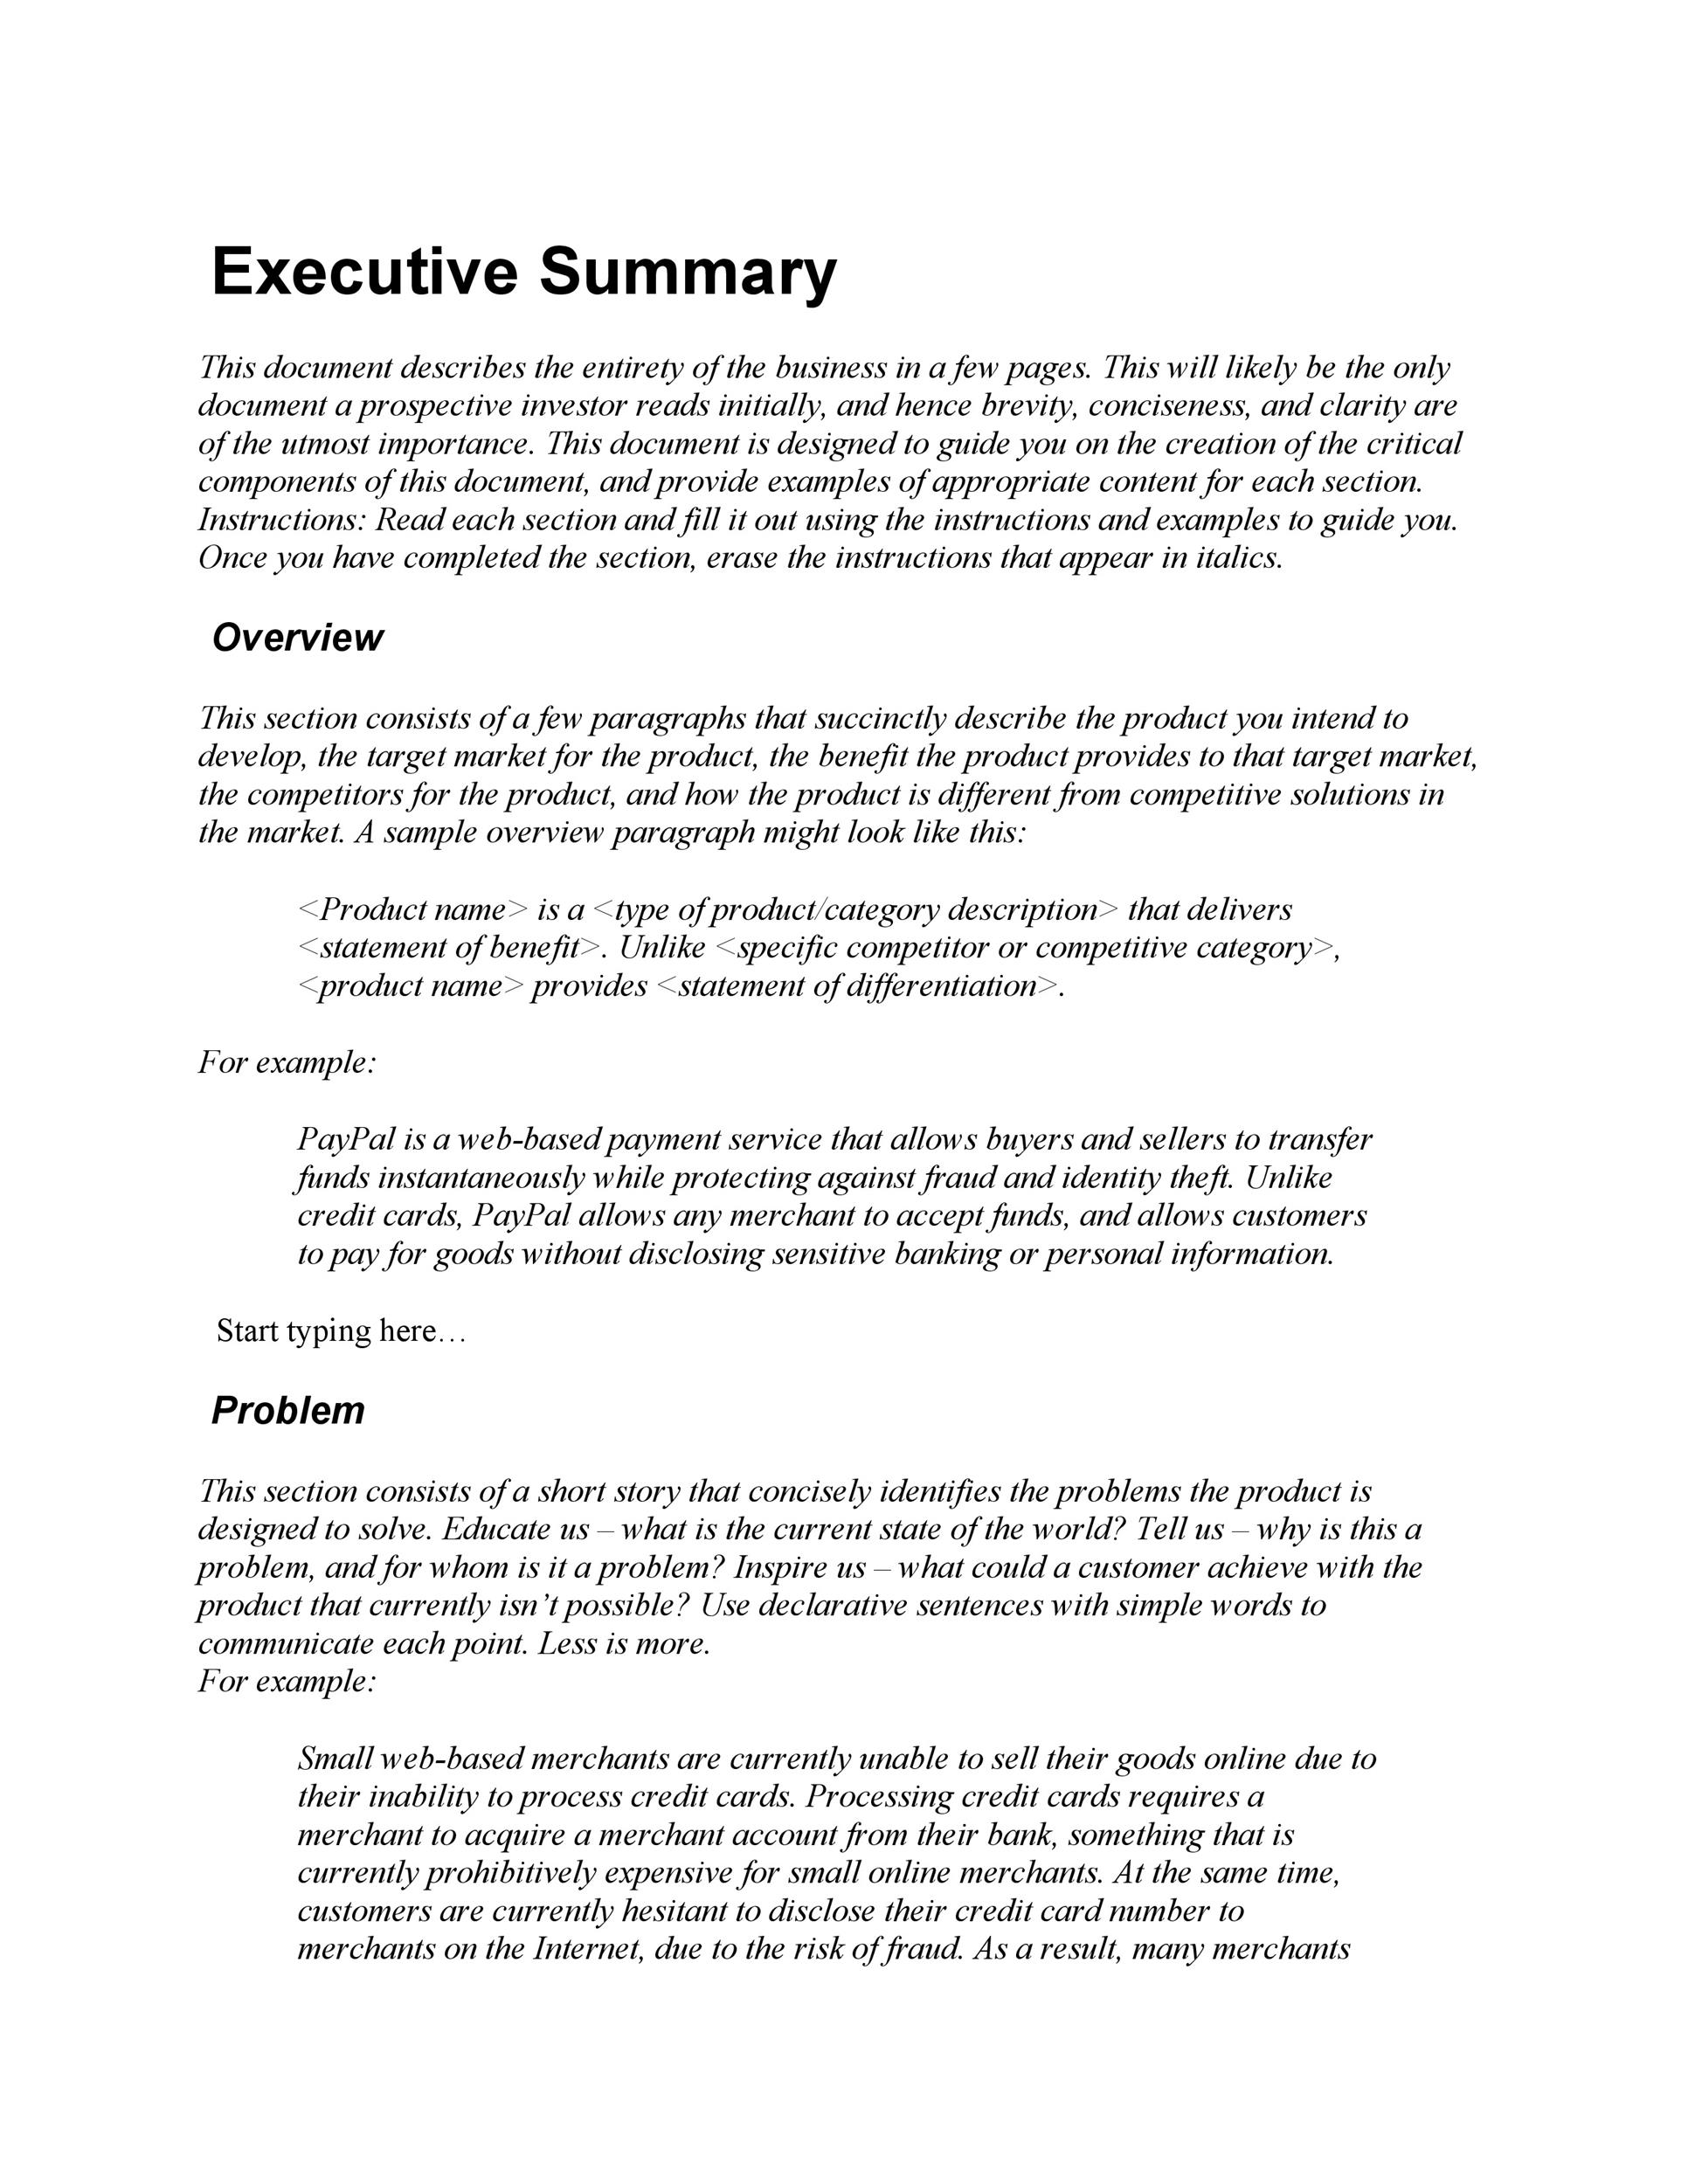 Executive Summary Template 09